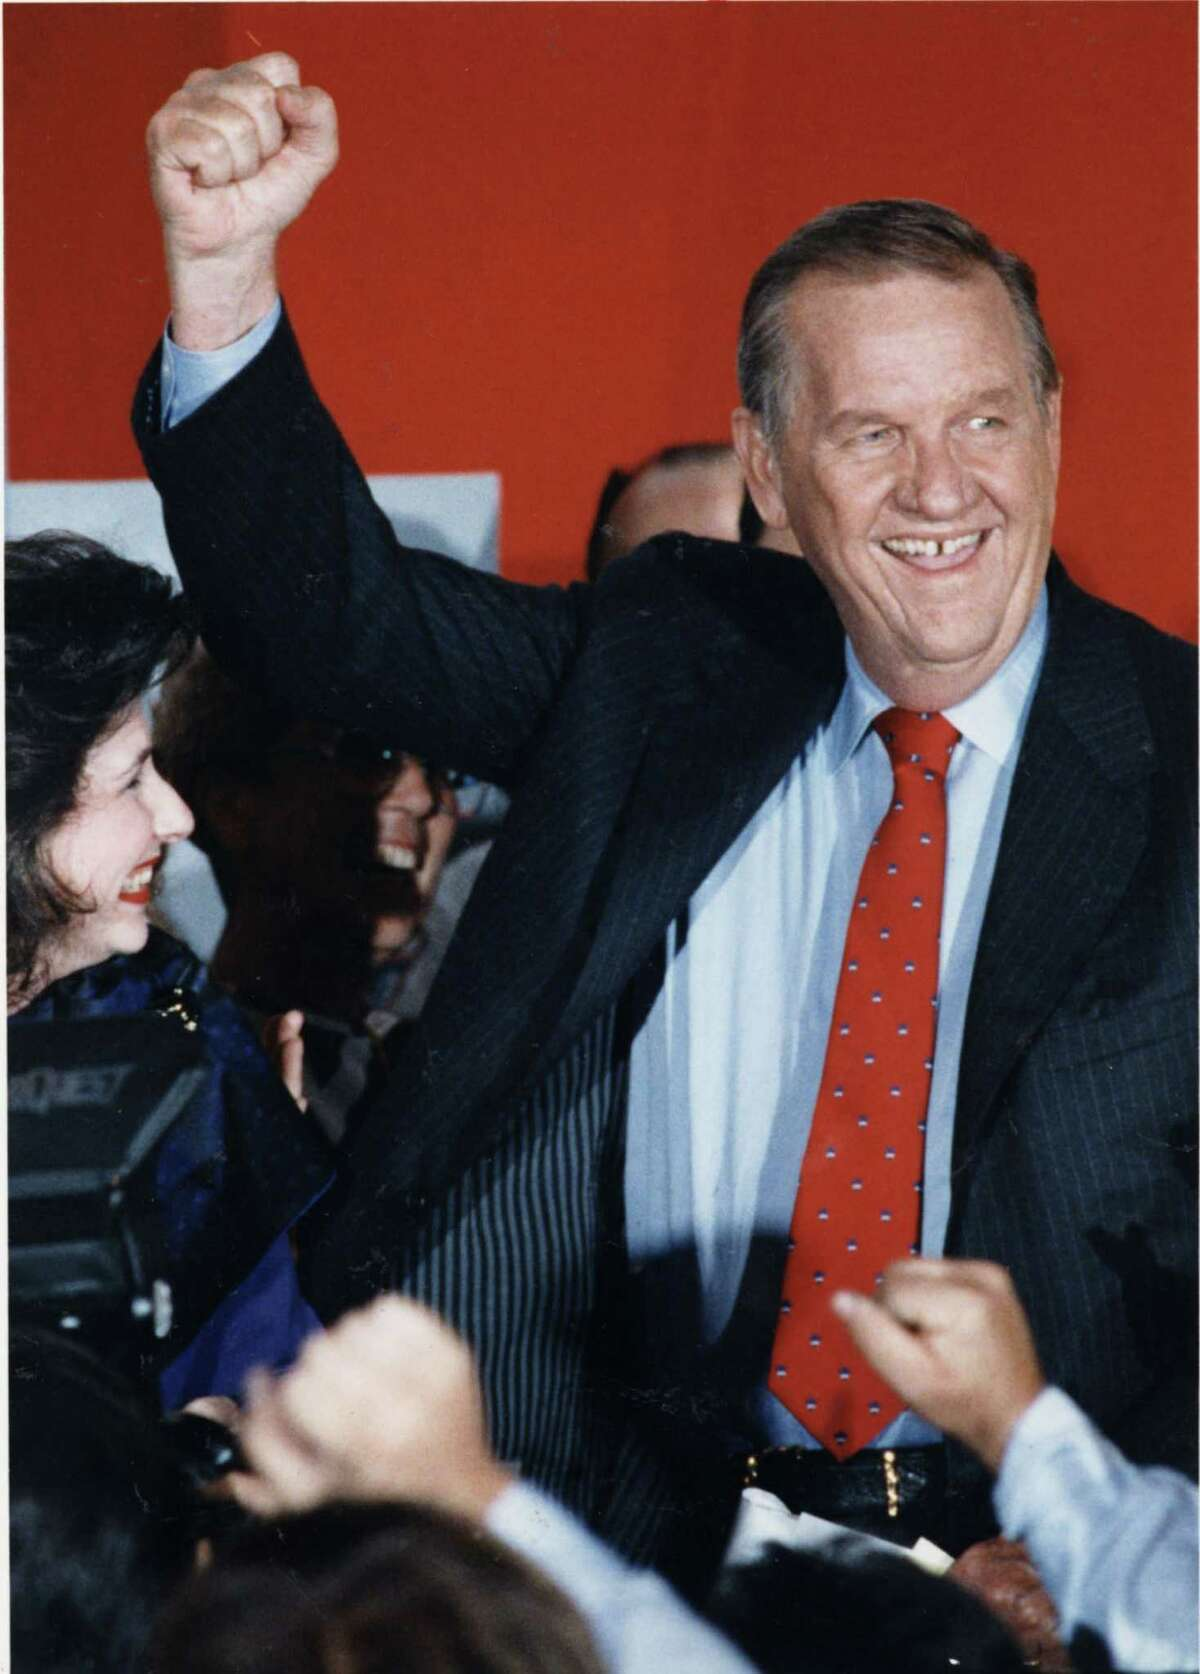 Mayoral runoff candidate, Bob Lanier, makes a victory speech at his headquarters, after incumbent Kathy Whitmire conceded defeat on Nov 5, 1991.